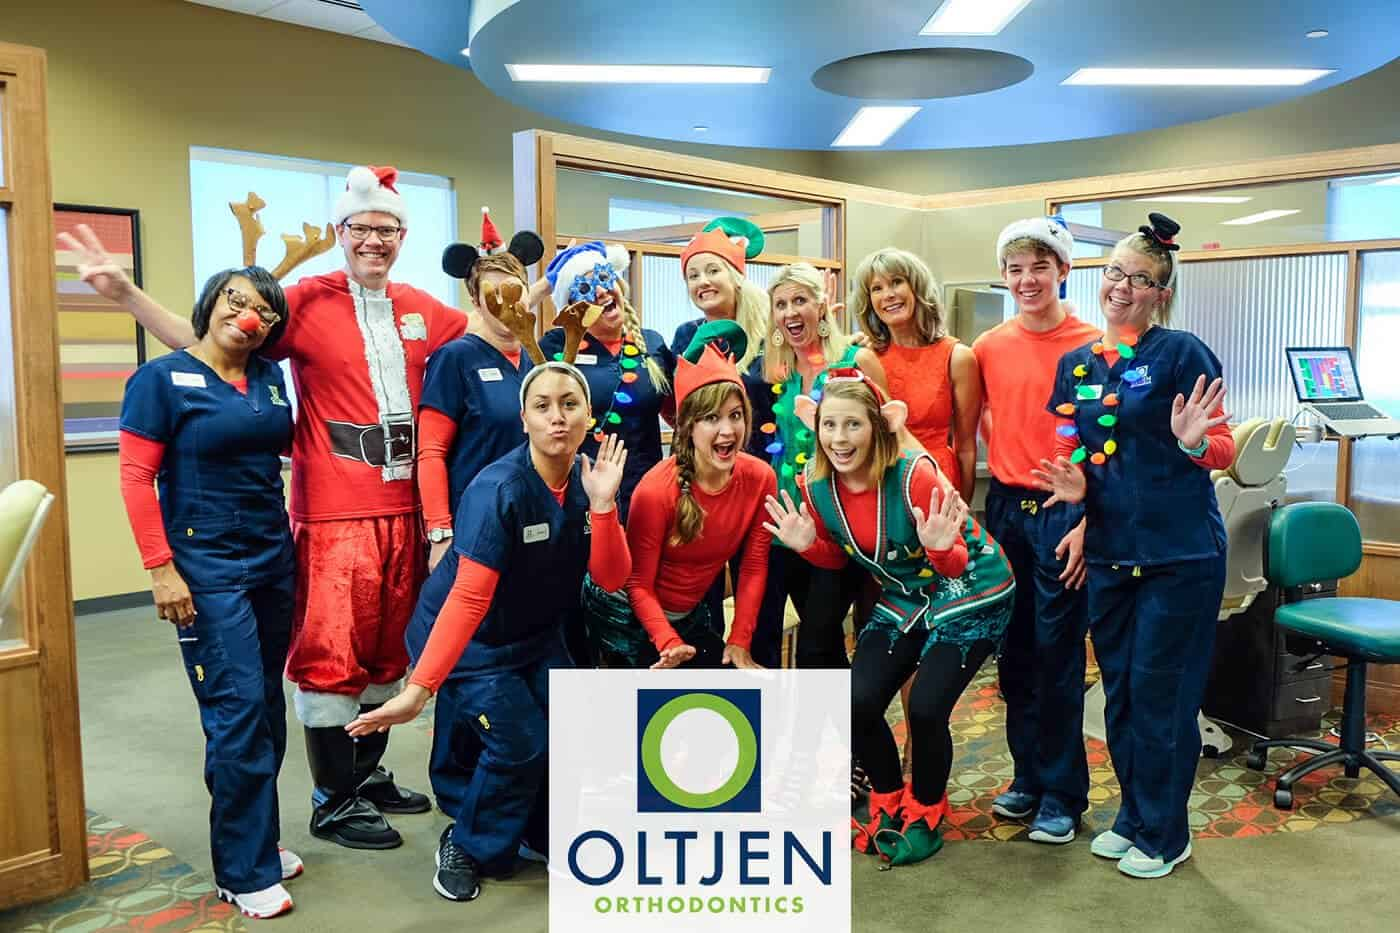 Oltjen-Orthodontics-Christmas-in-July-8-of-10